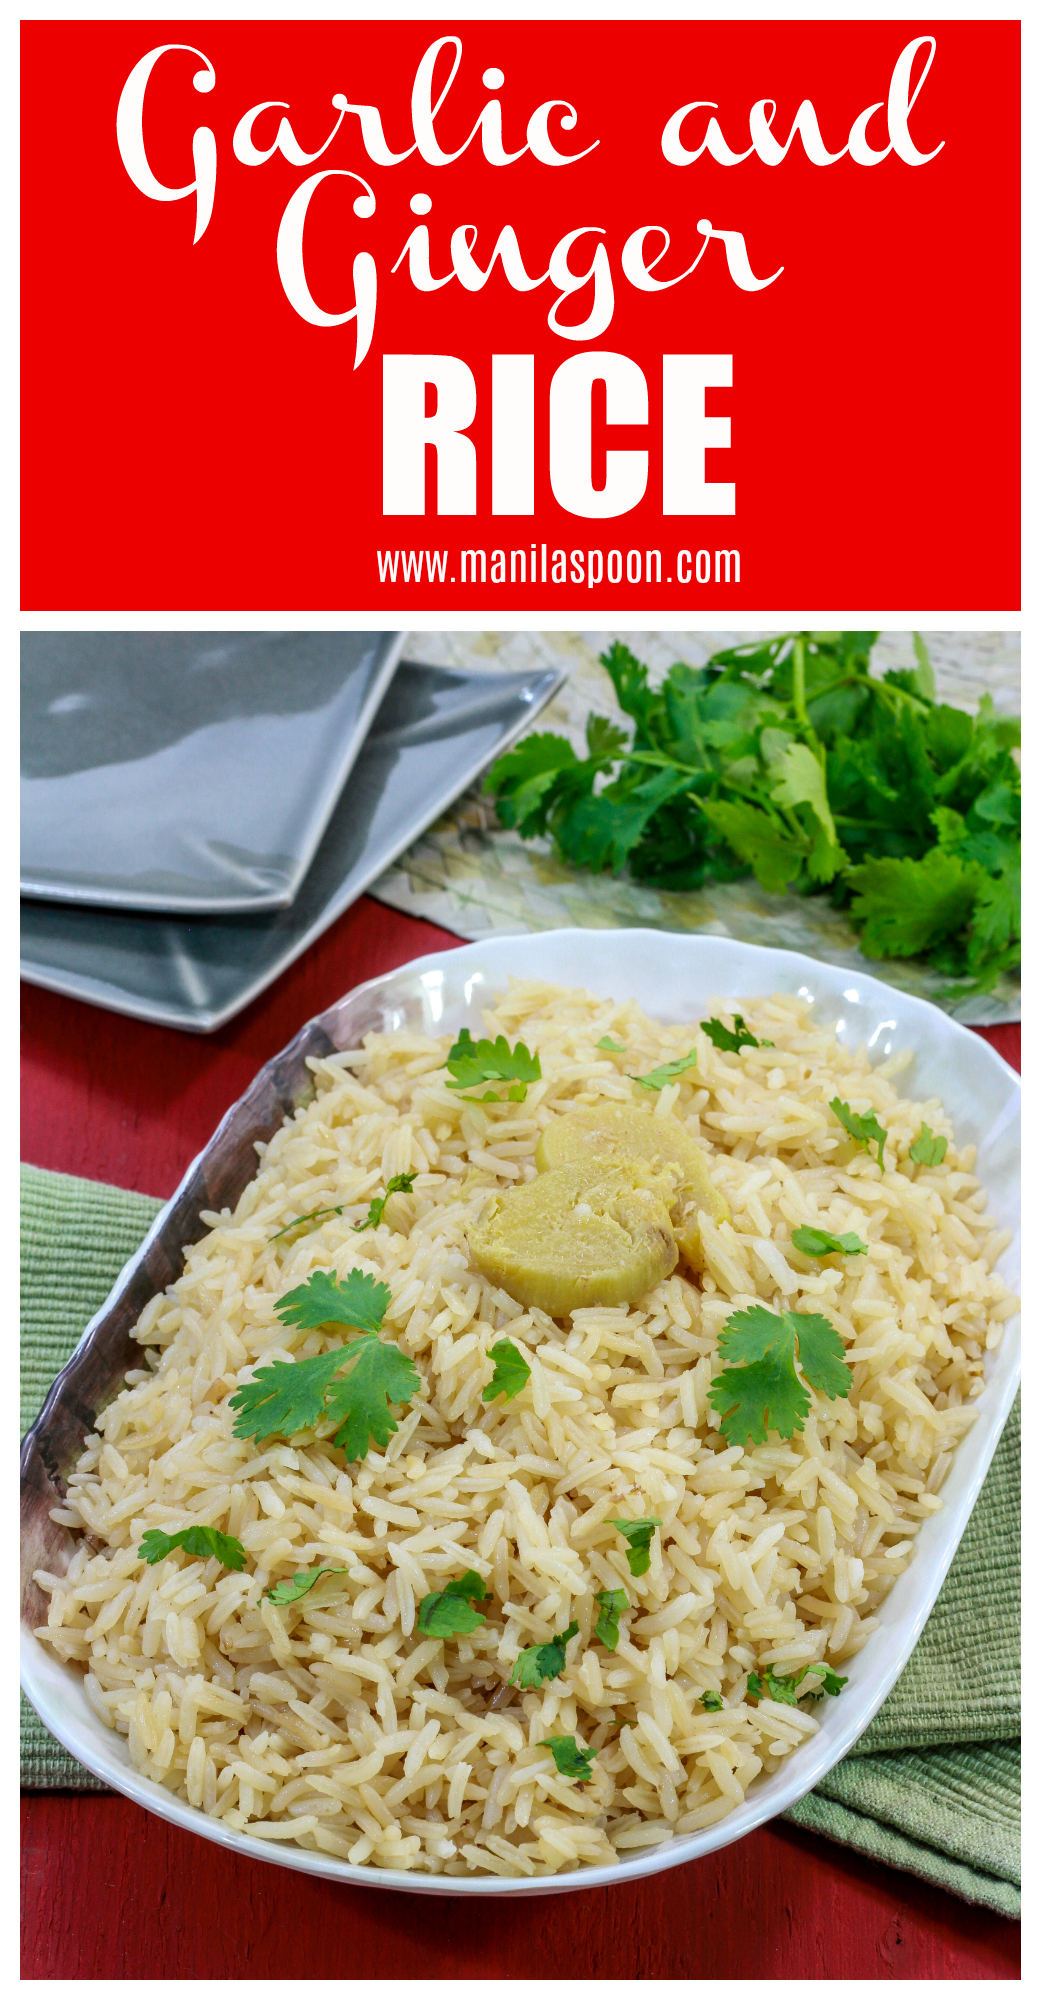 Flavored with garlic and ginger and cooked in chicken broth this easy rice dish is not only tasty it would complement any main dish that calls for rice. Can be made in the stove top or rice cooker for ease and convenience. #rice #garlicrice #gingerrice #comgungtuong